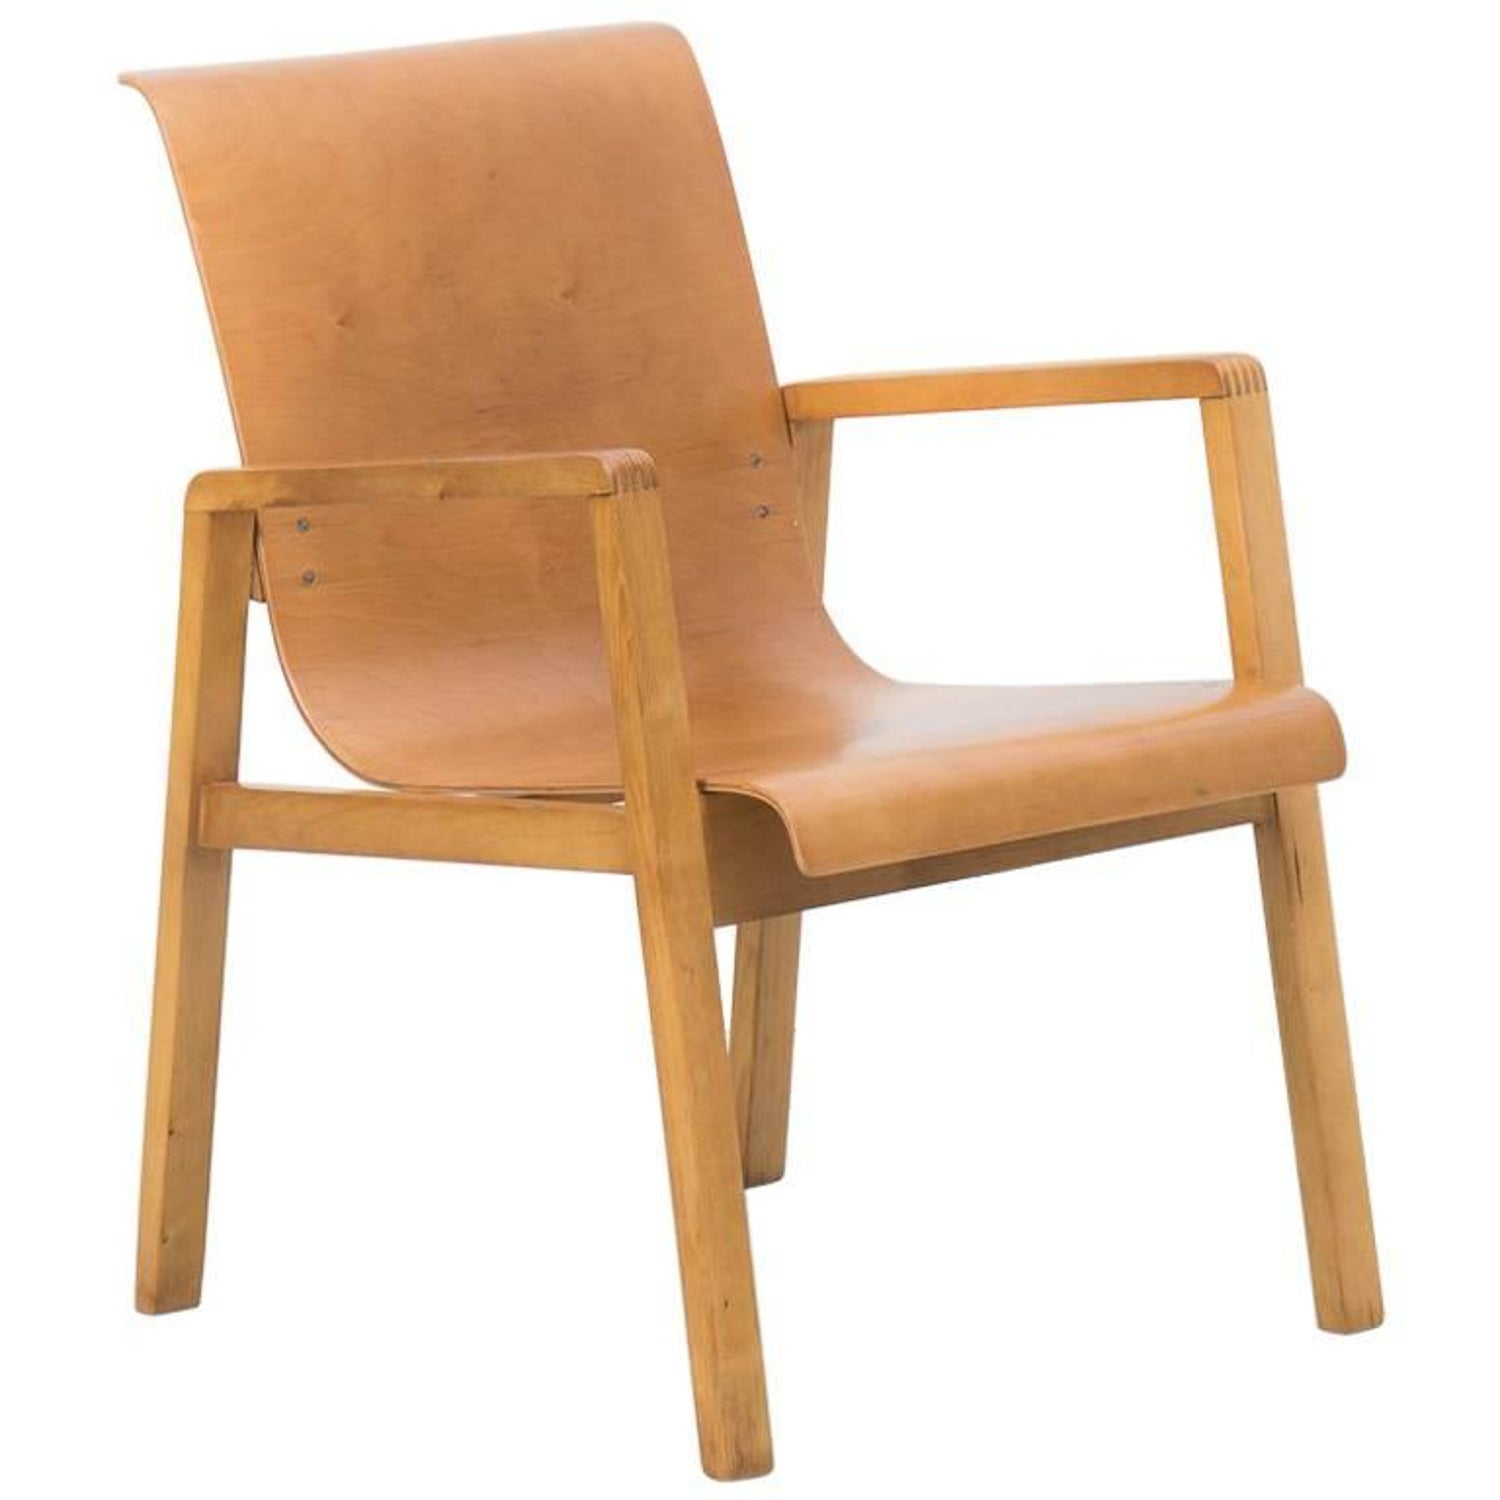 Vintage aalto chair - Early Finmar Production Alvar Aalto 403 Hallway Chair For Sale At 1stdibs